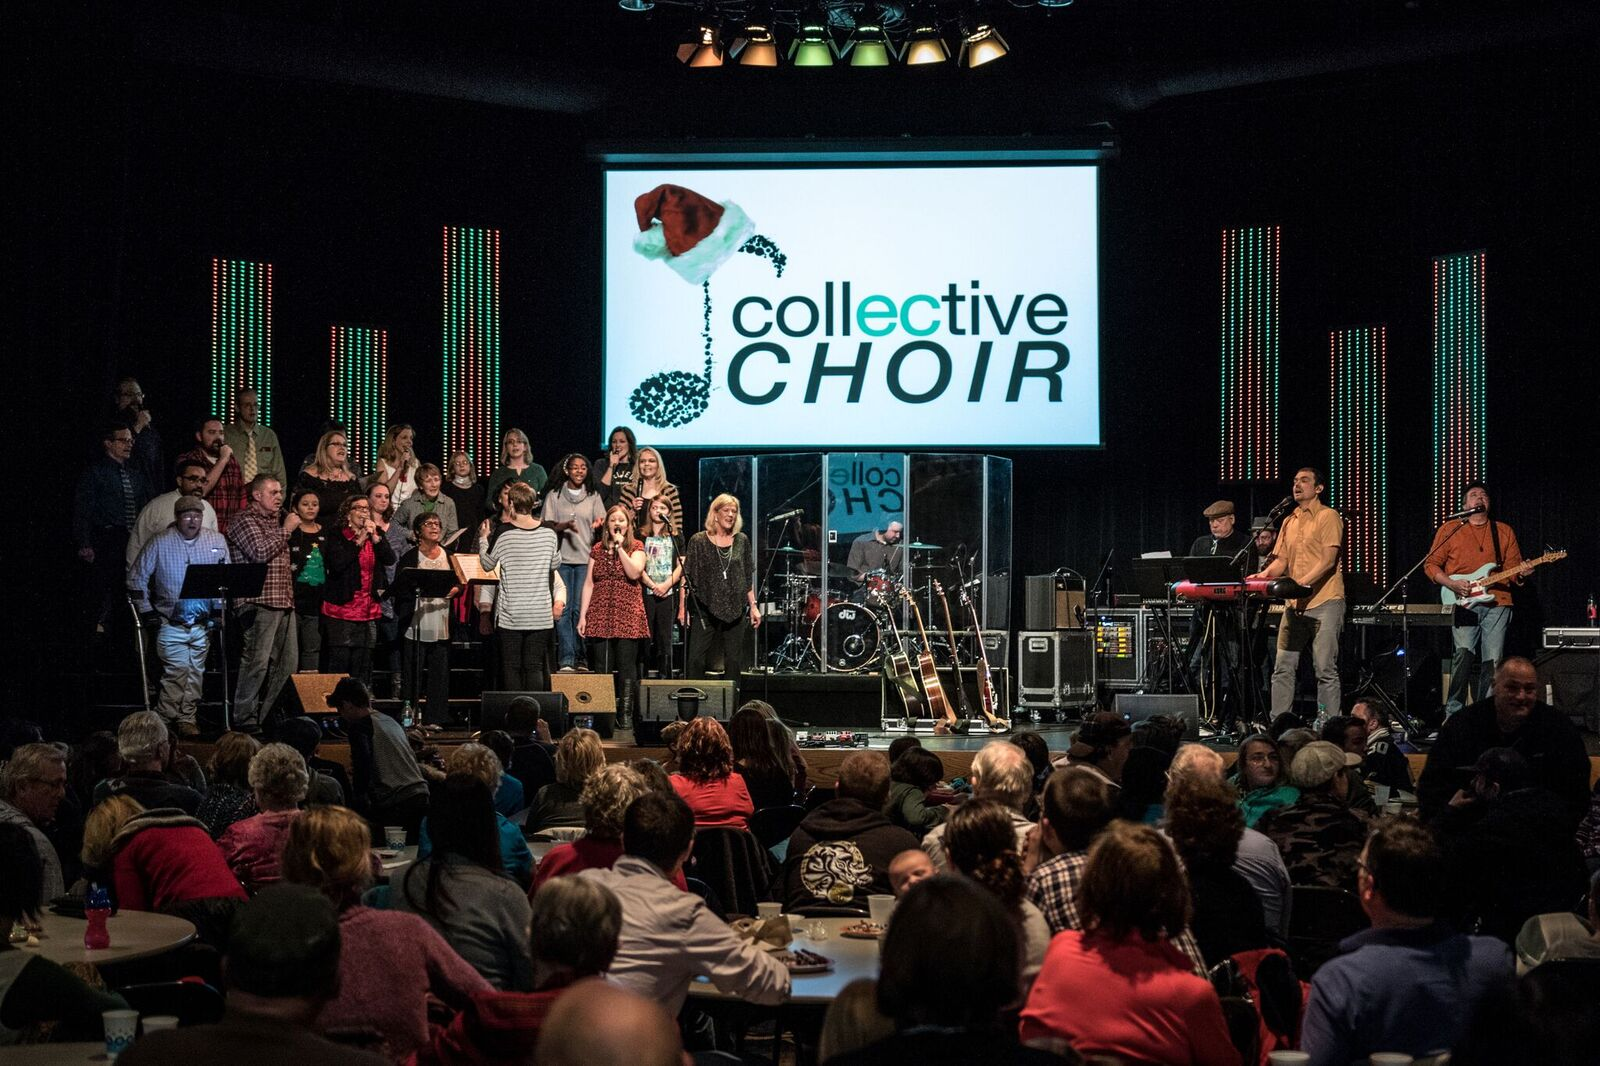 The CollECtive Choir performs at the 2017 'GO' concert, located at Peace Church in Eau Claire Wi.